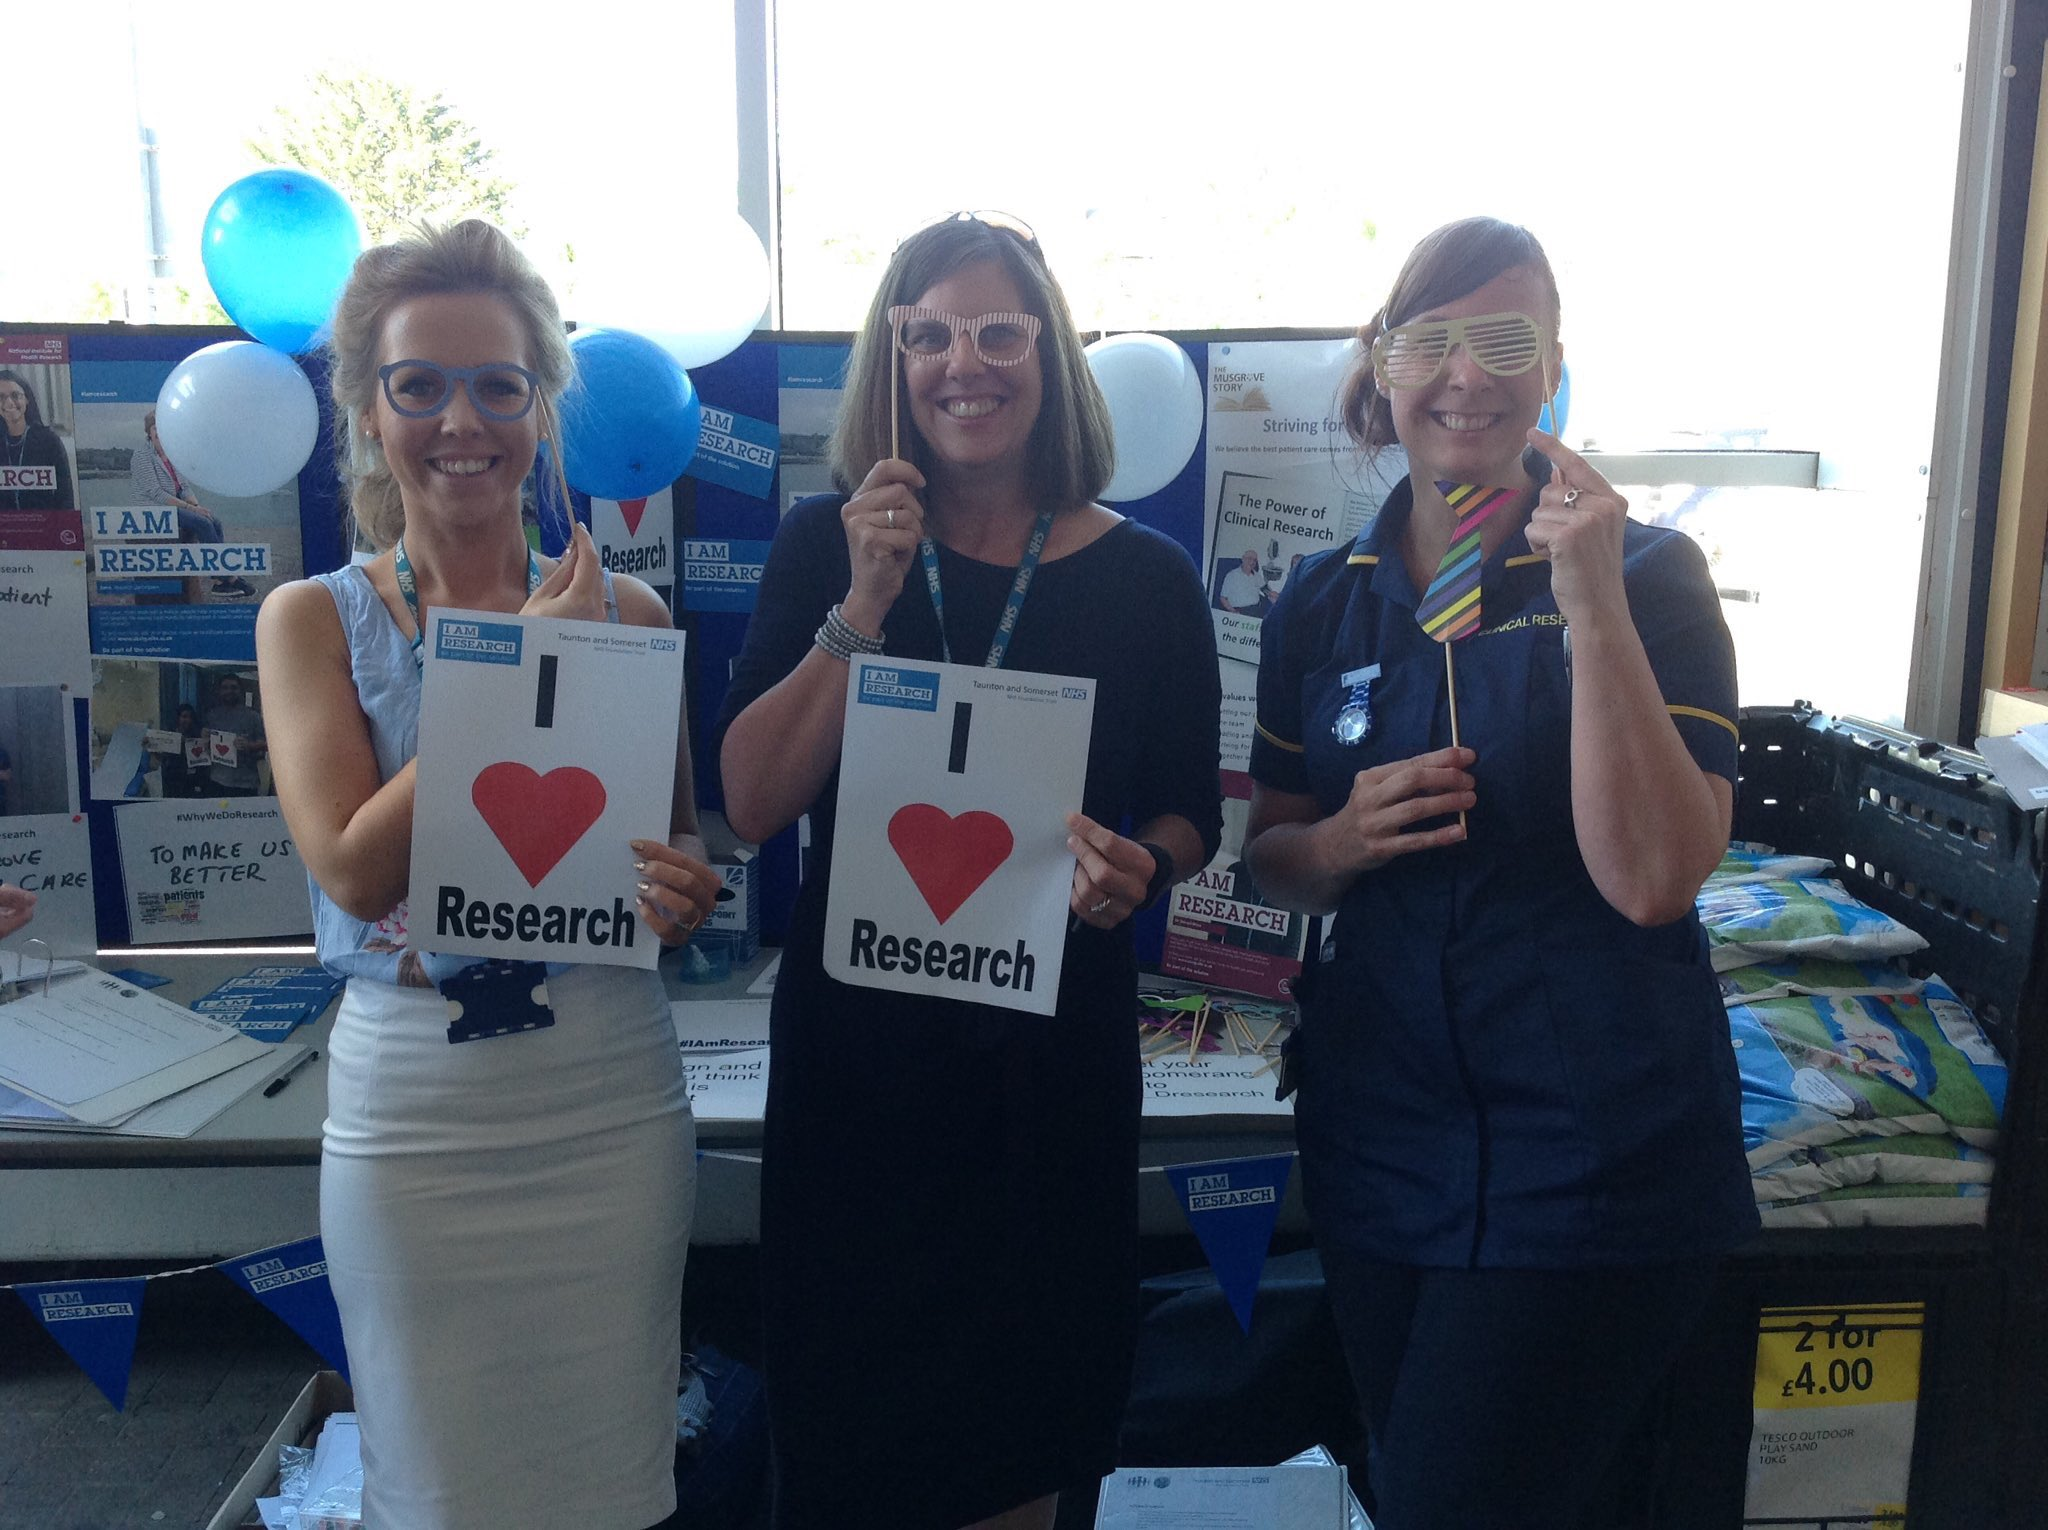 Visit our pop up photo booth today @Tesco superstore Taunton to learn #WhyWeDoResearch in your area!! @CountyGazette @OfficialNIHR https://t.co/yZQBhJDwKx